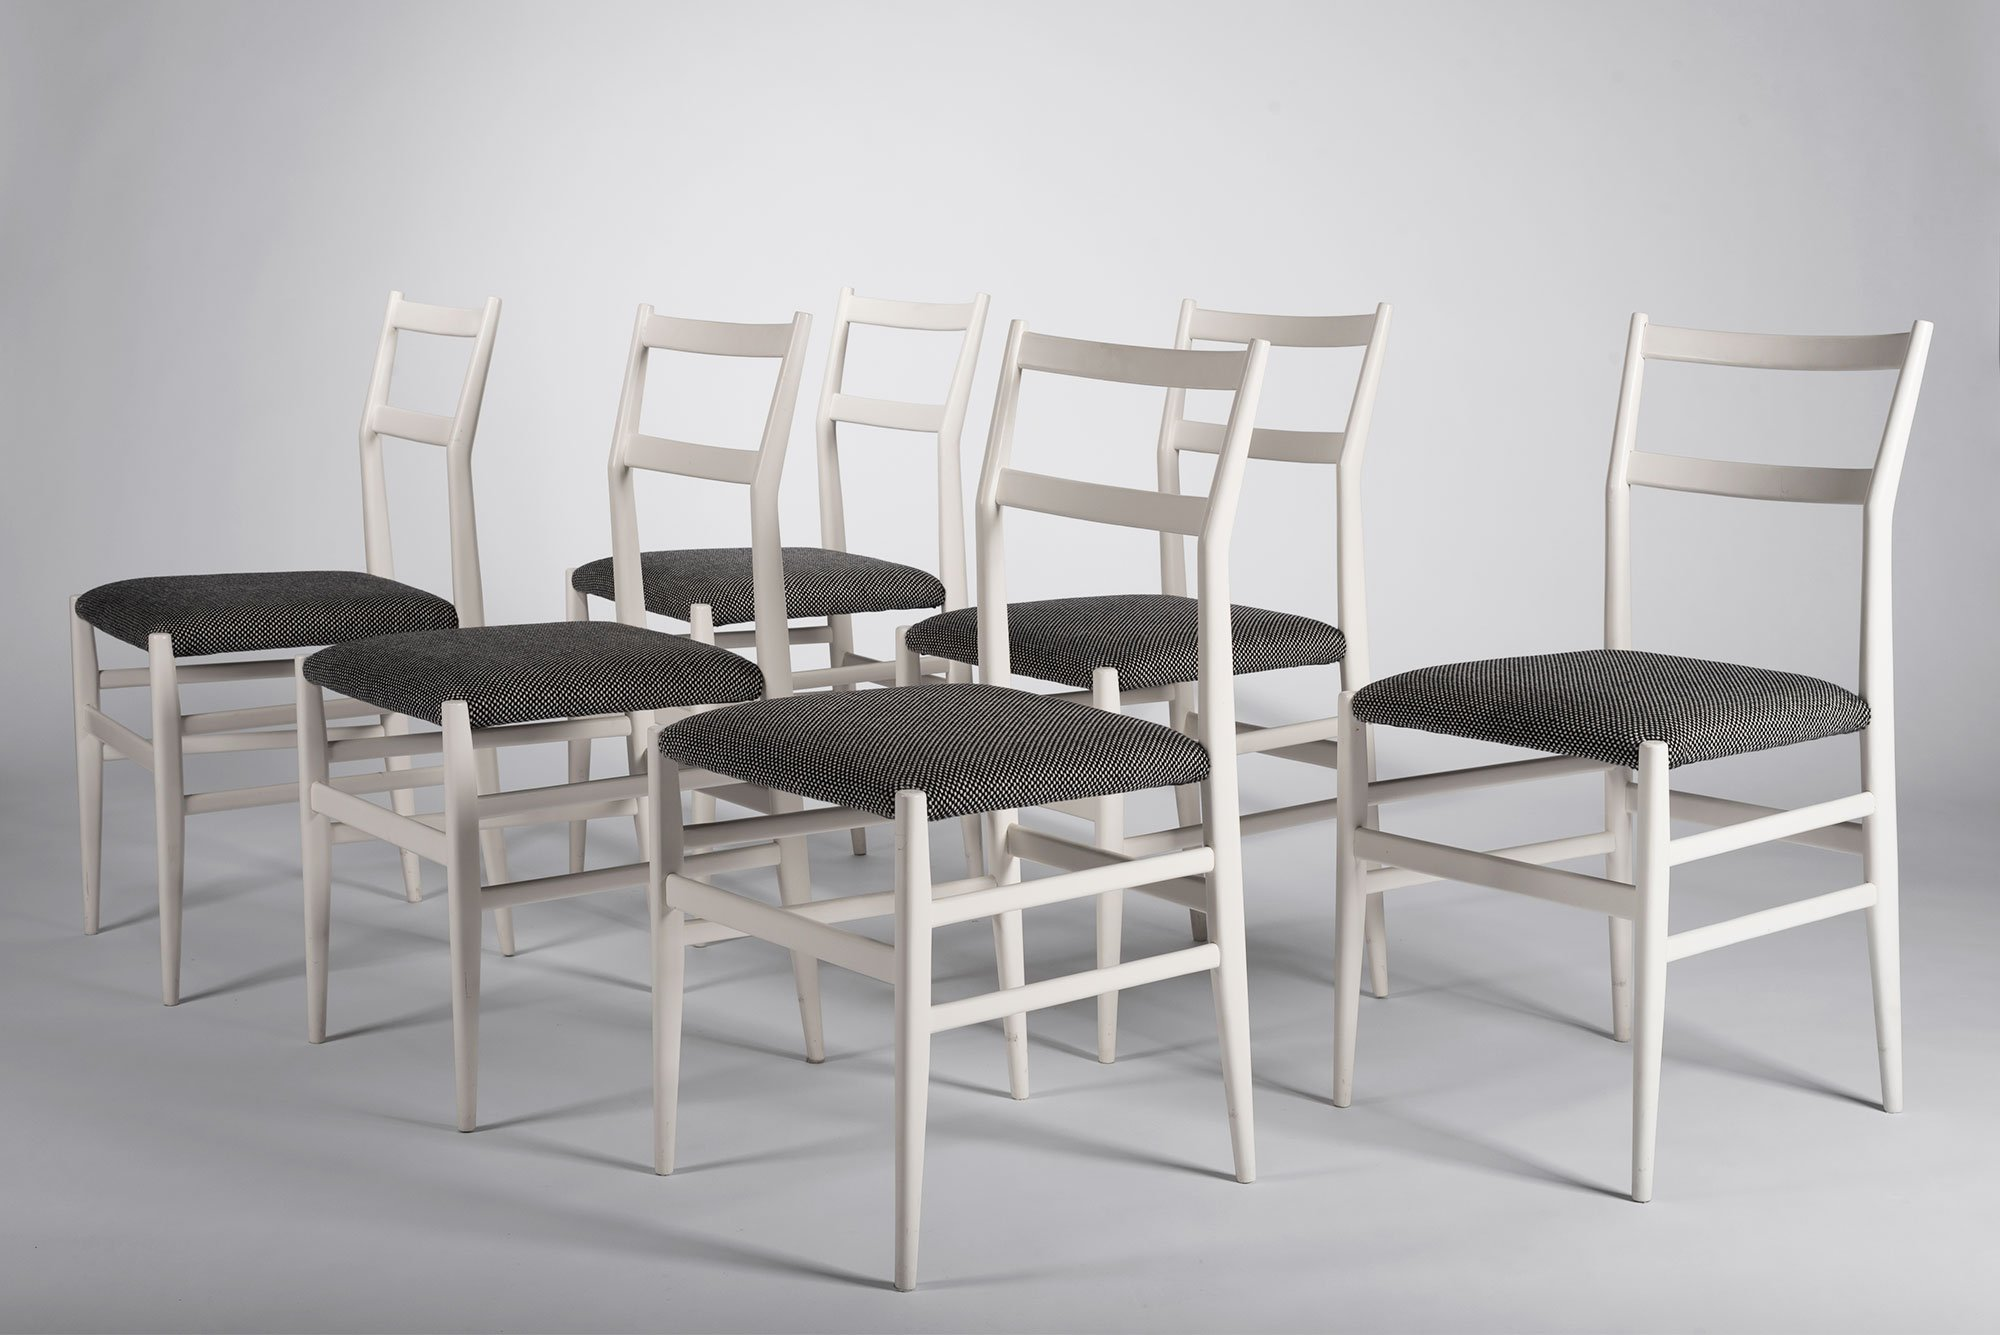 Gio Ponti |  Set of 6 dining chairs model 646/2